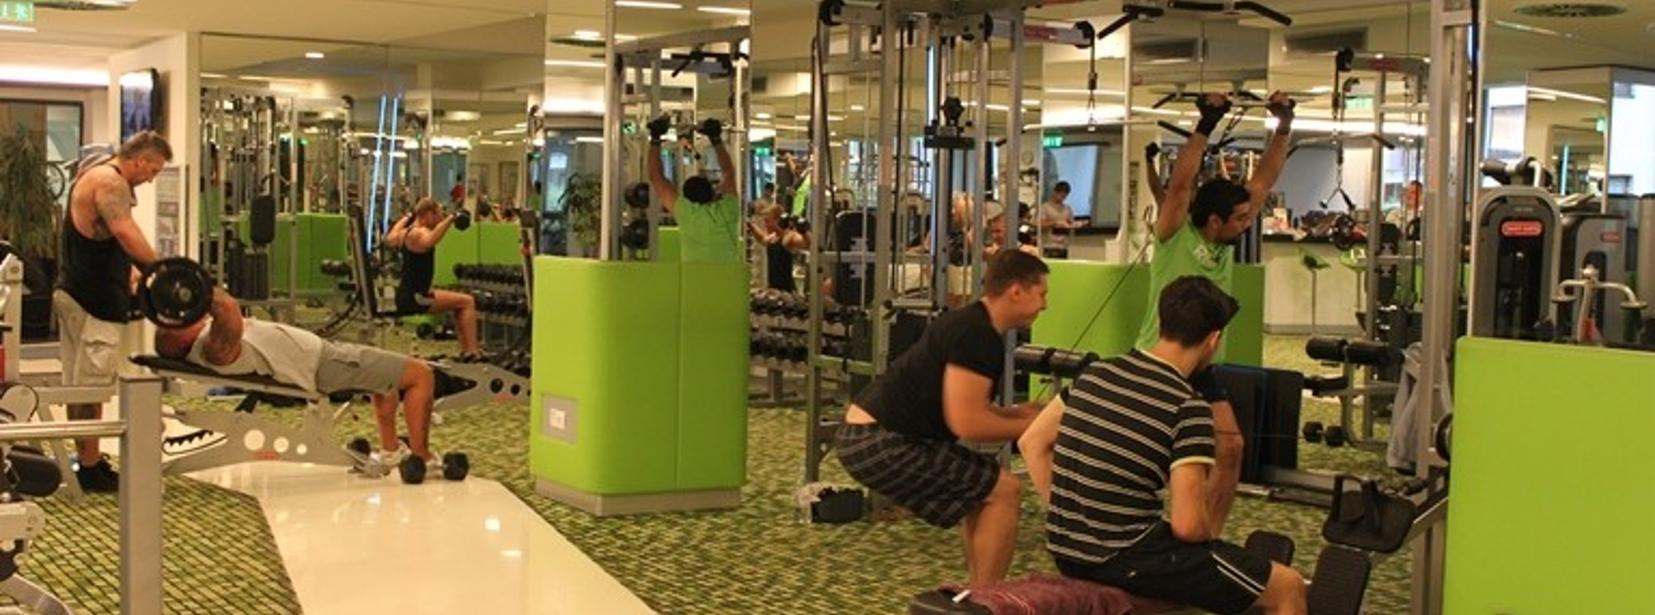 Life 1 Corvin Fitness and Wellness  4c9a2e2076